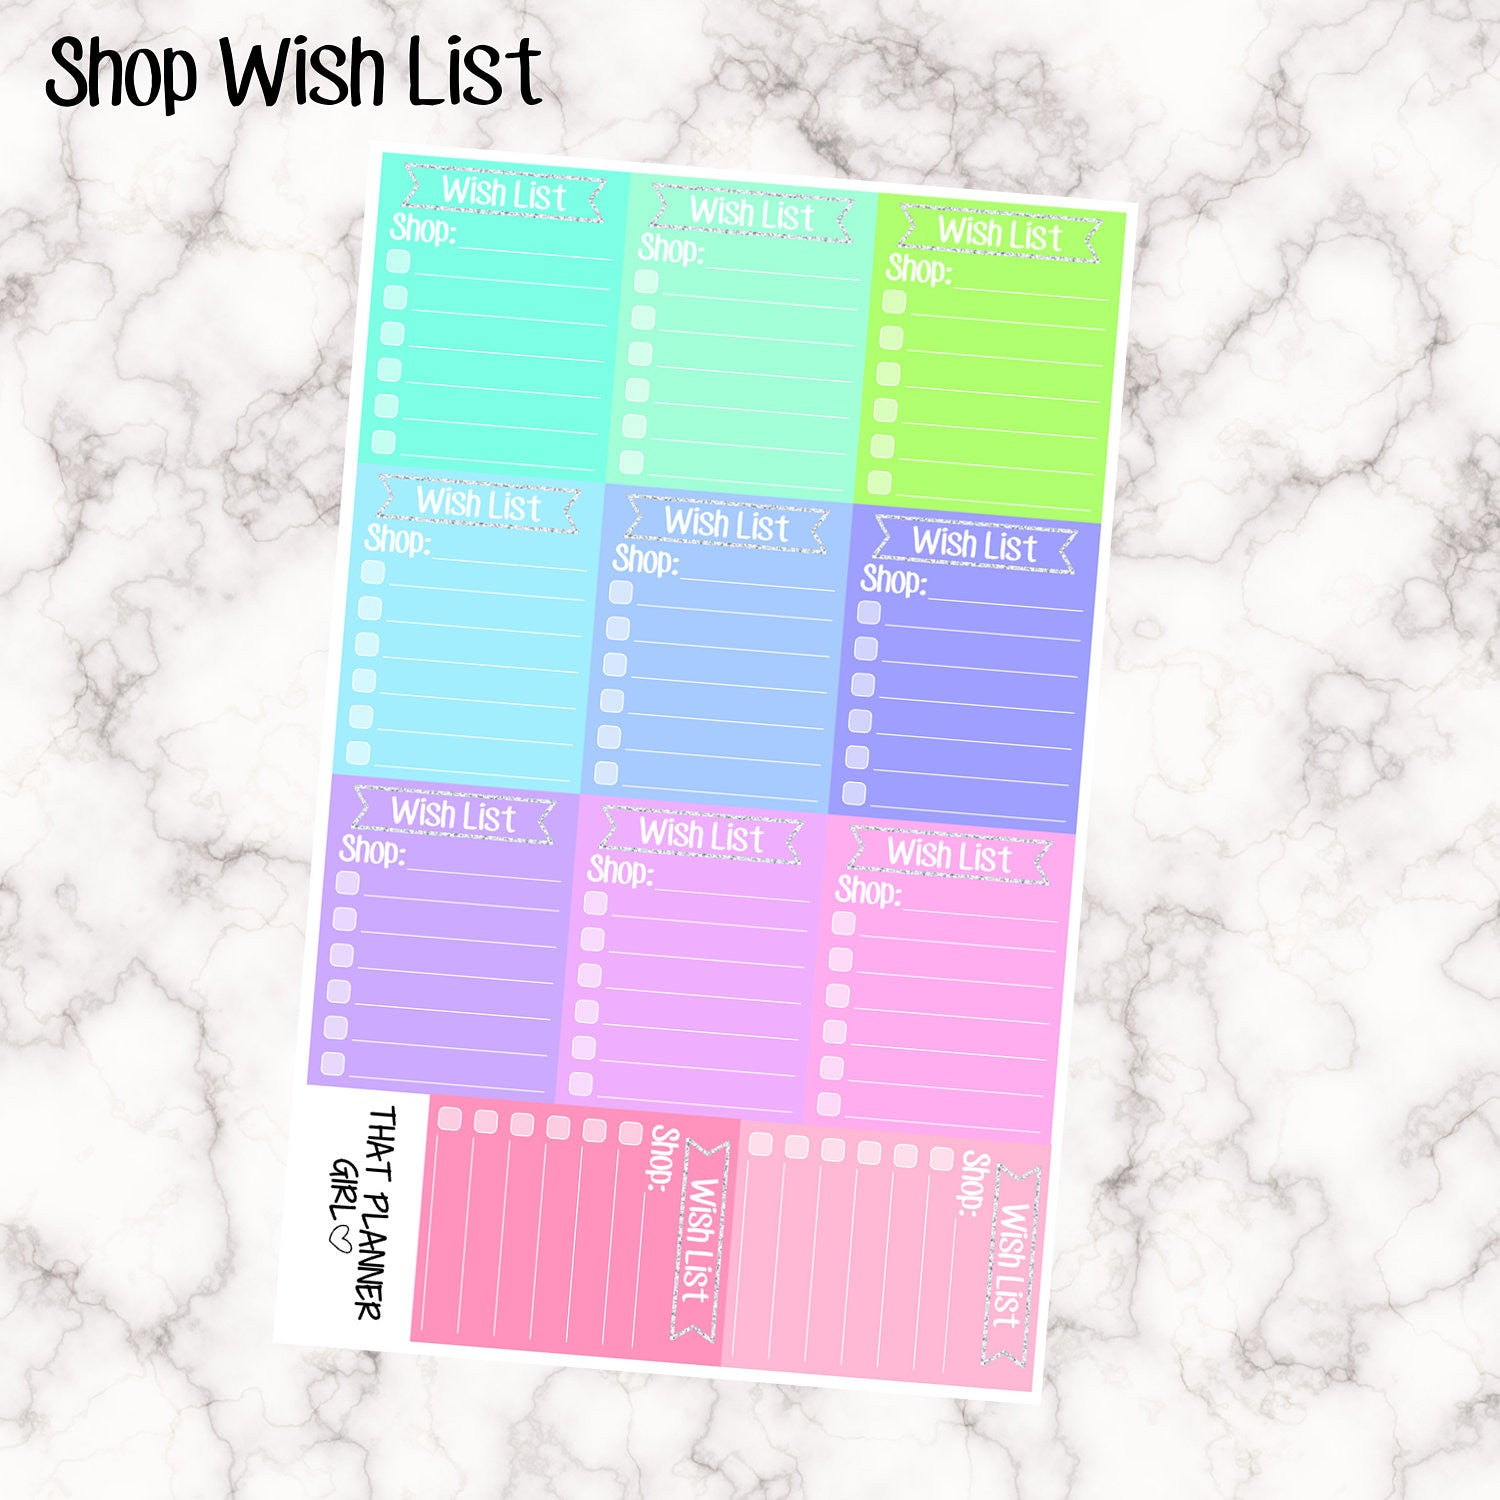 Shop Wish List Stickers